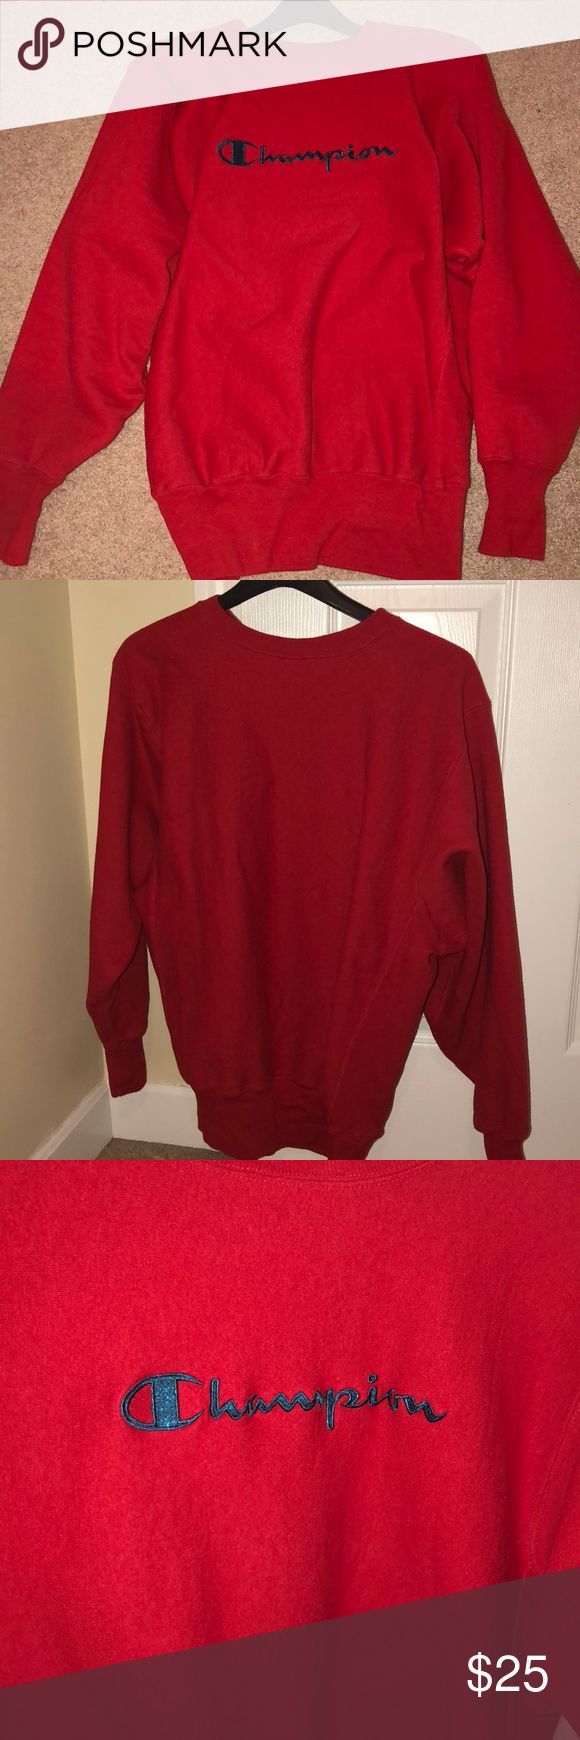 Red champion hoodie red champion hoodie, good condition, inside of shirt where the logo is can be kind of scratchy on the skin Champion Tops Sweatshirts & Hoodies